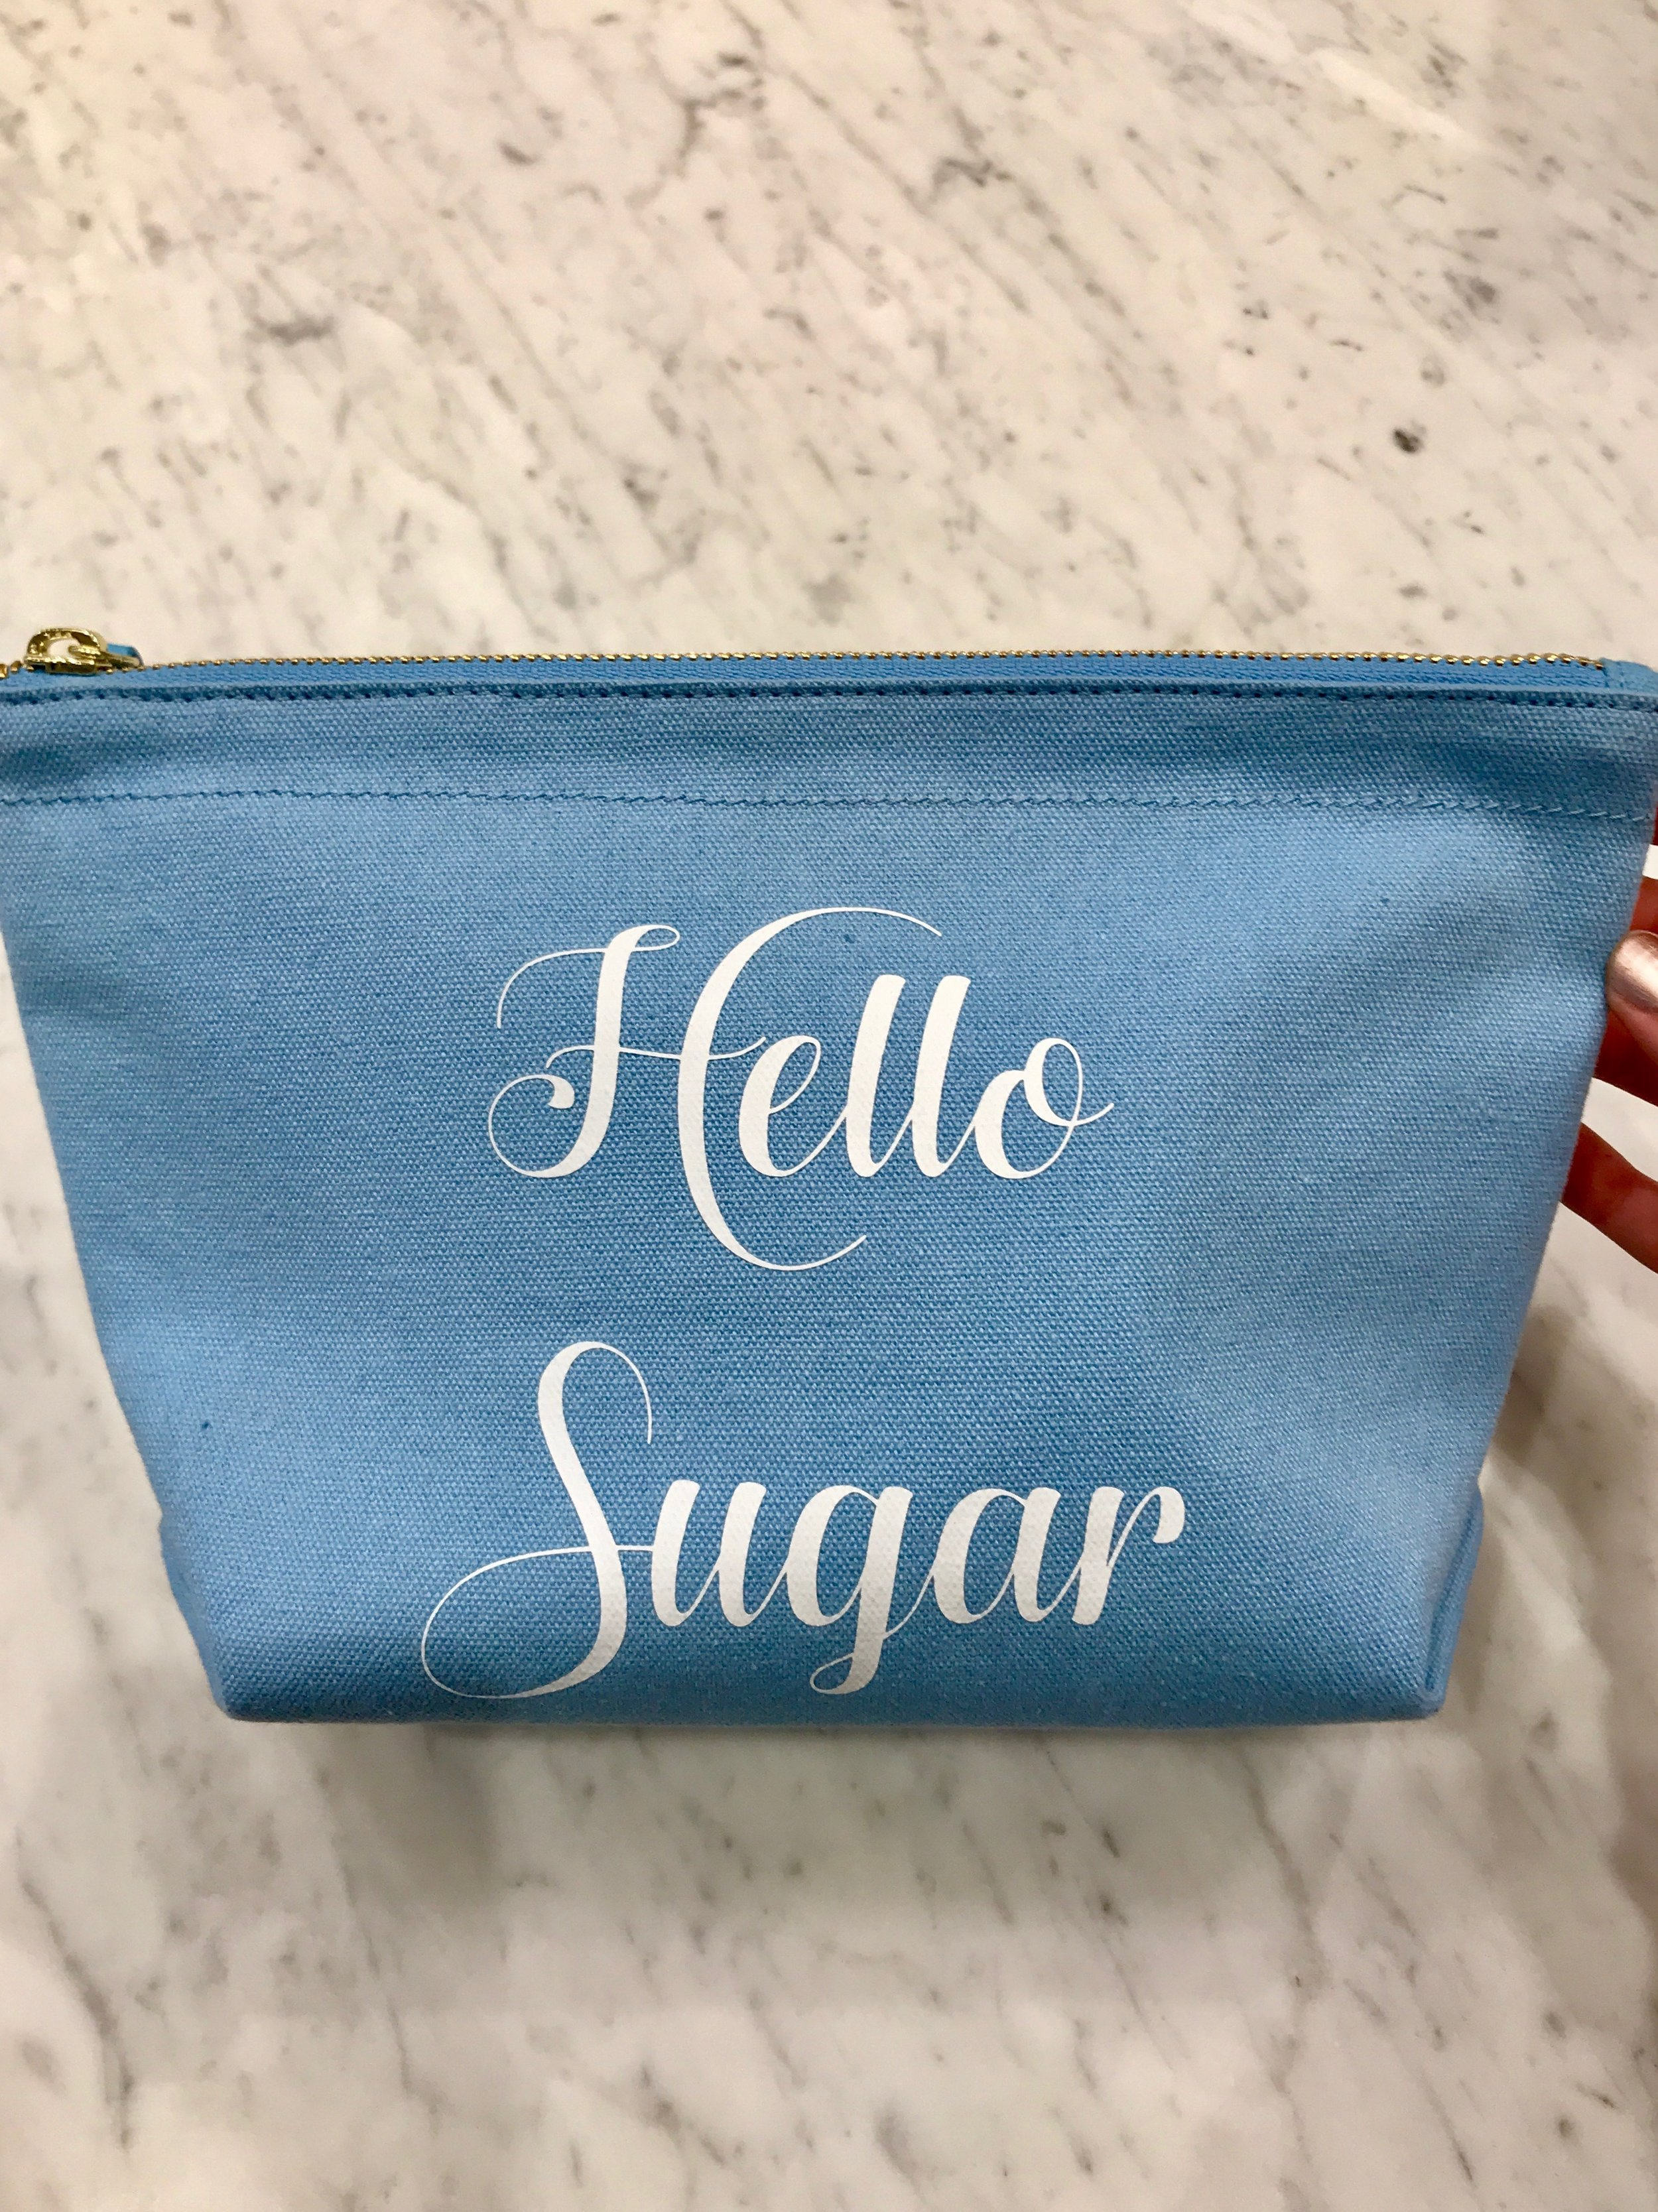 Makeup bag - $30 - Store: Draper JamesI personally love makeup bags (really any the of bag). I think this one is super cute and a great size. It comes in multiple colors and sayings. I love this bag because it can be used for a variety of things. It is also lined on the inside.